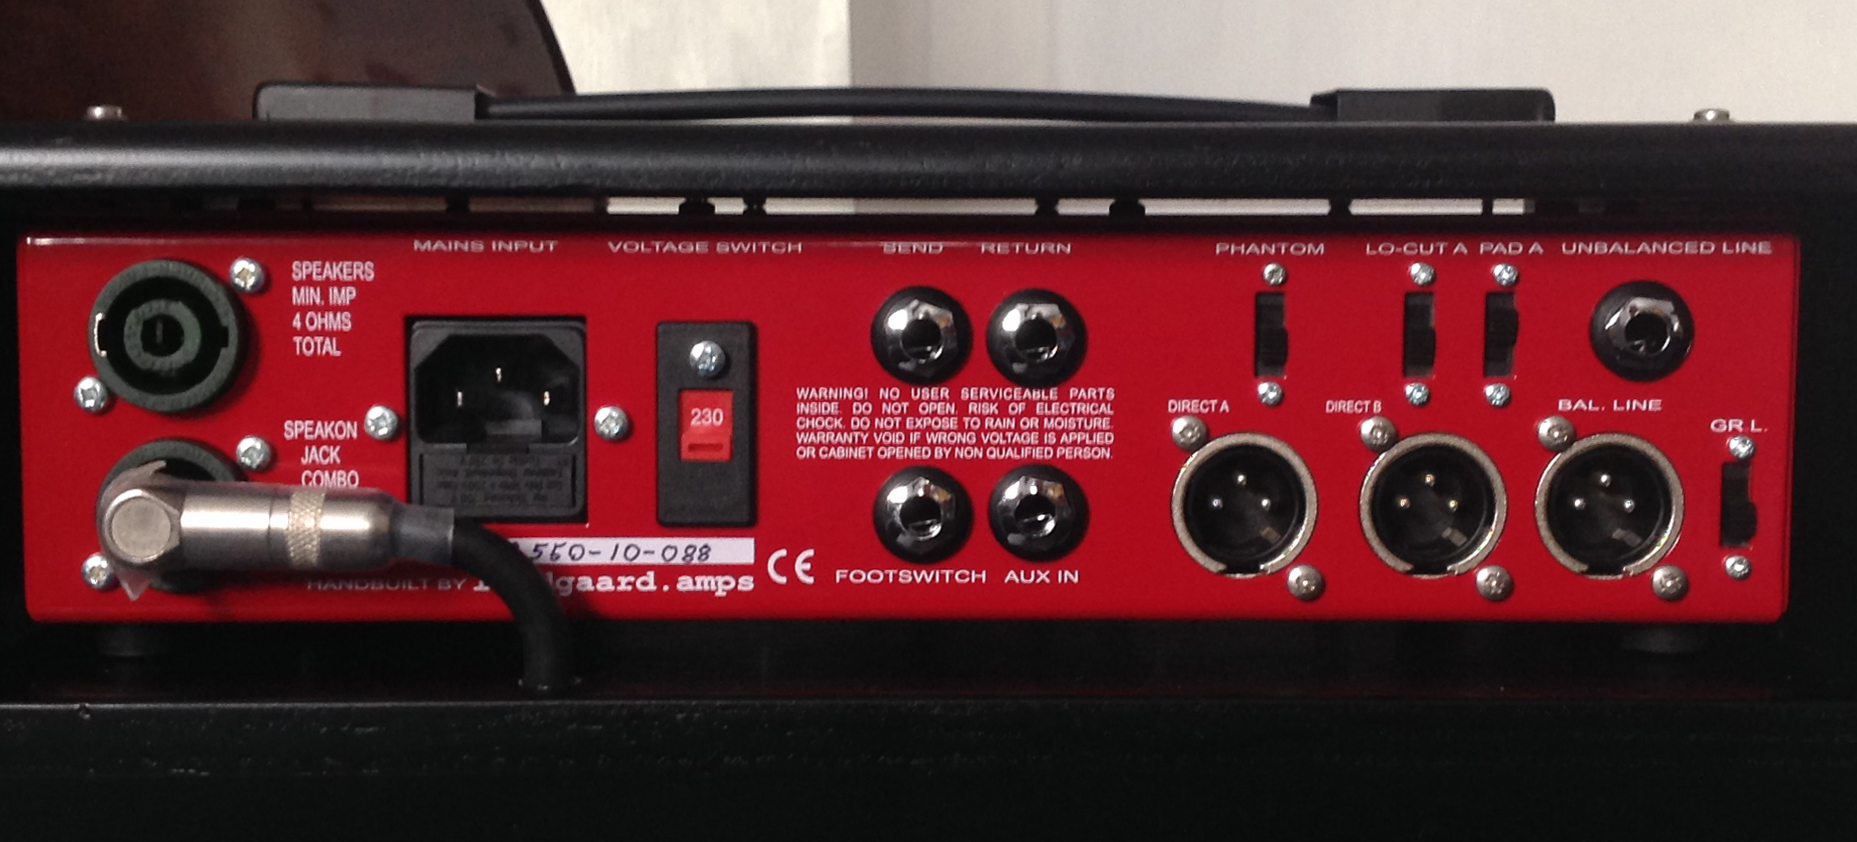 Amps Preamps Double Bass Guide 1000 Ideas About Buffer Amplifier On Pinterest Audio Lundgaard